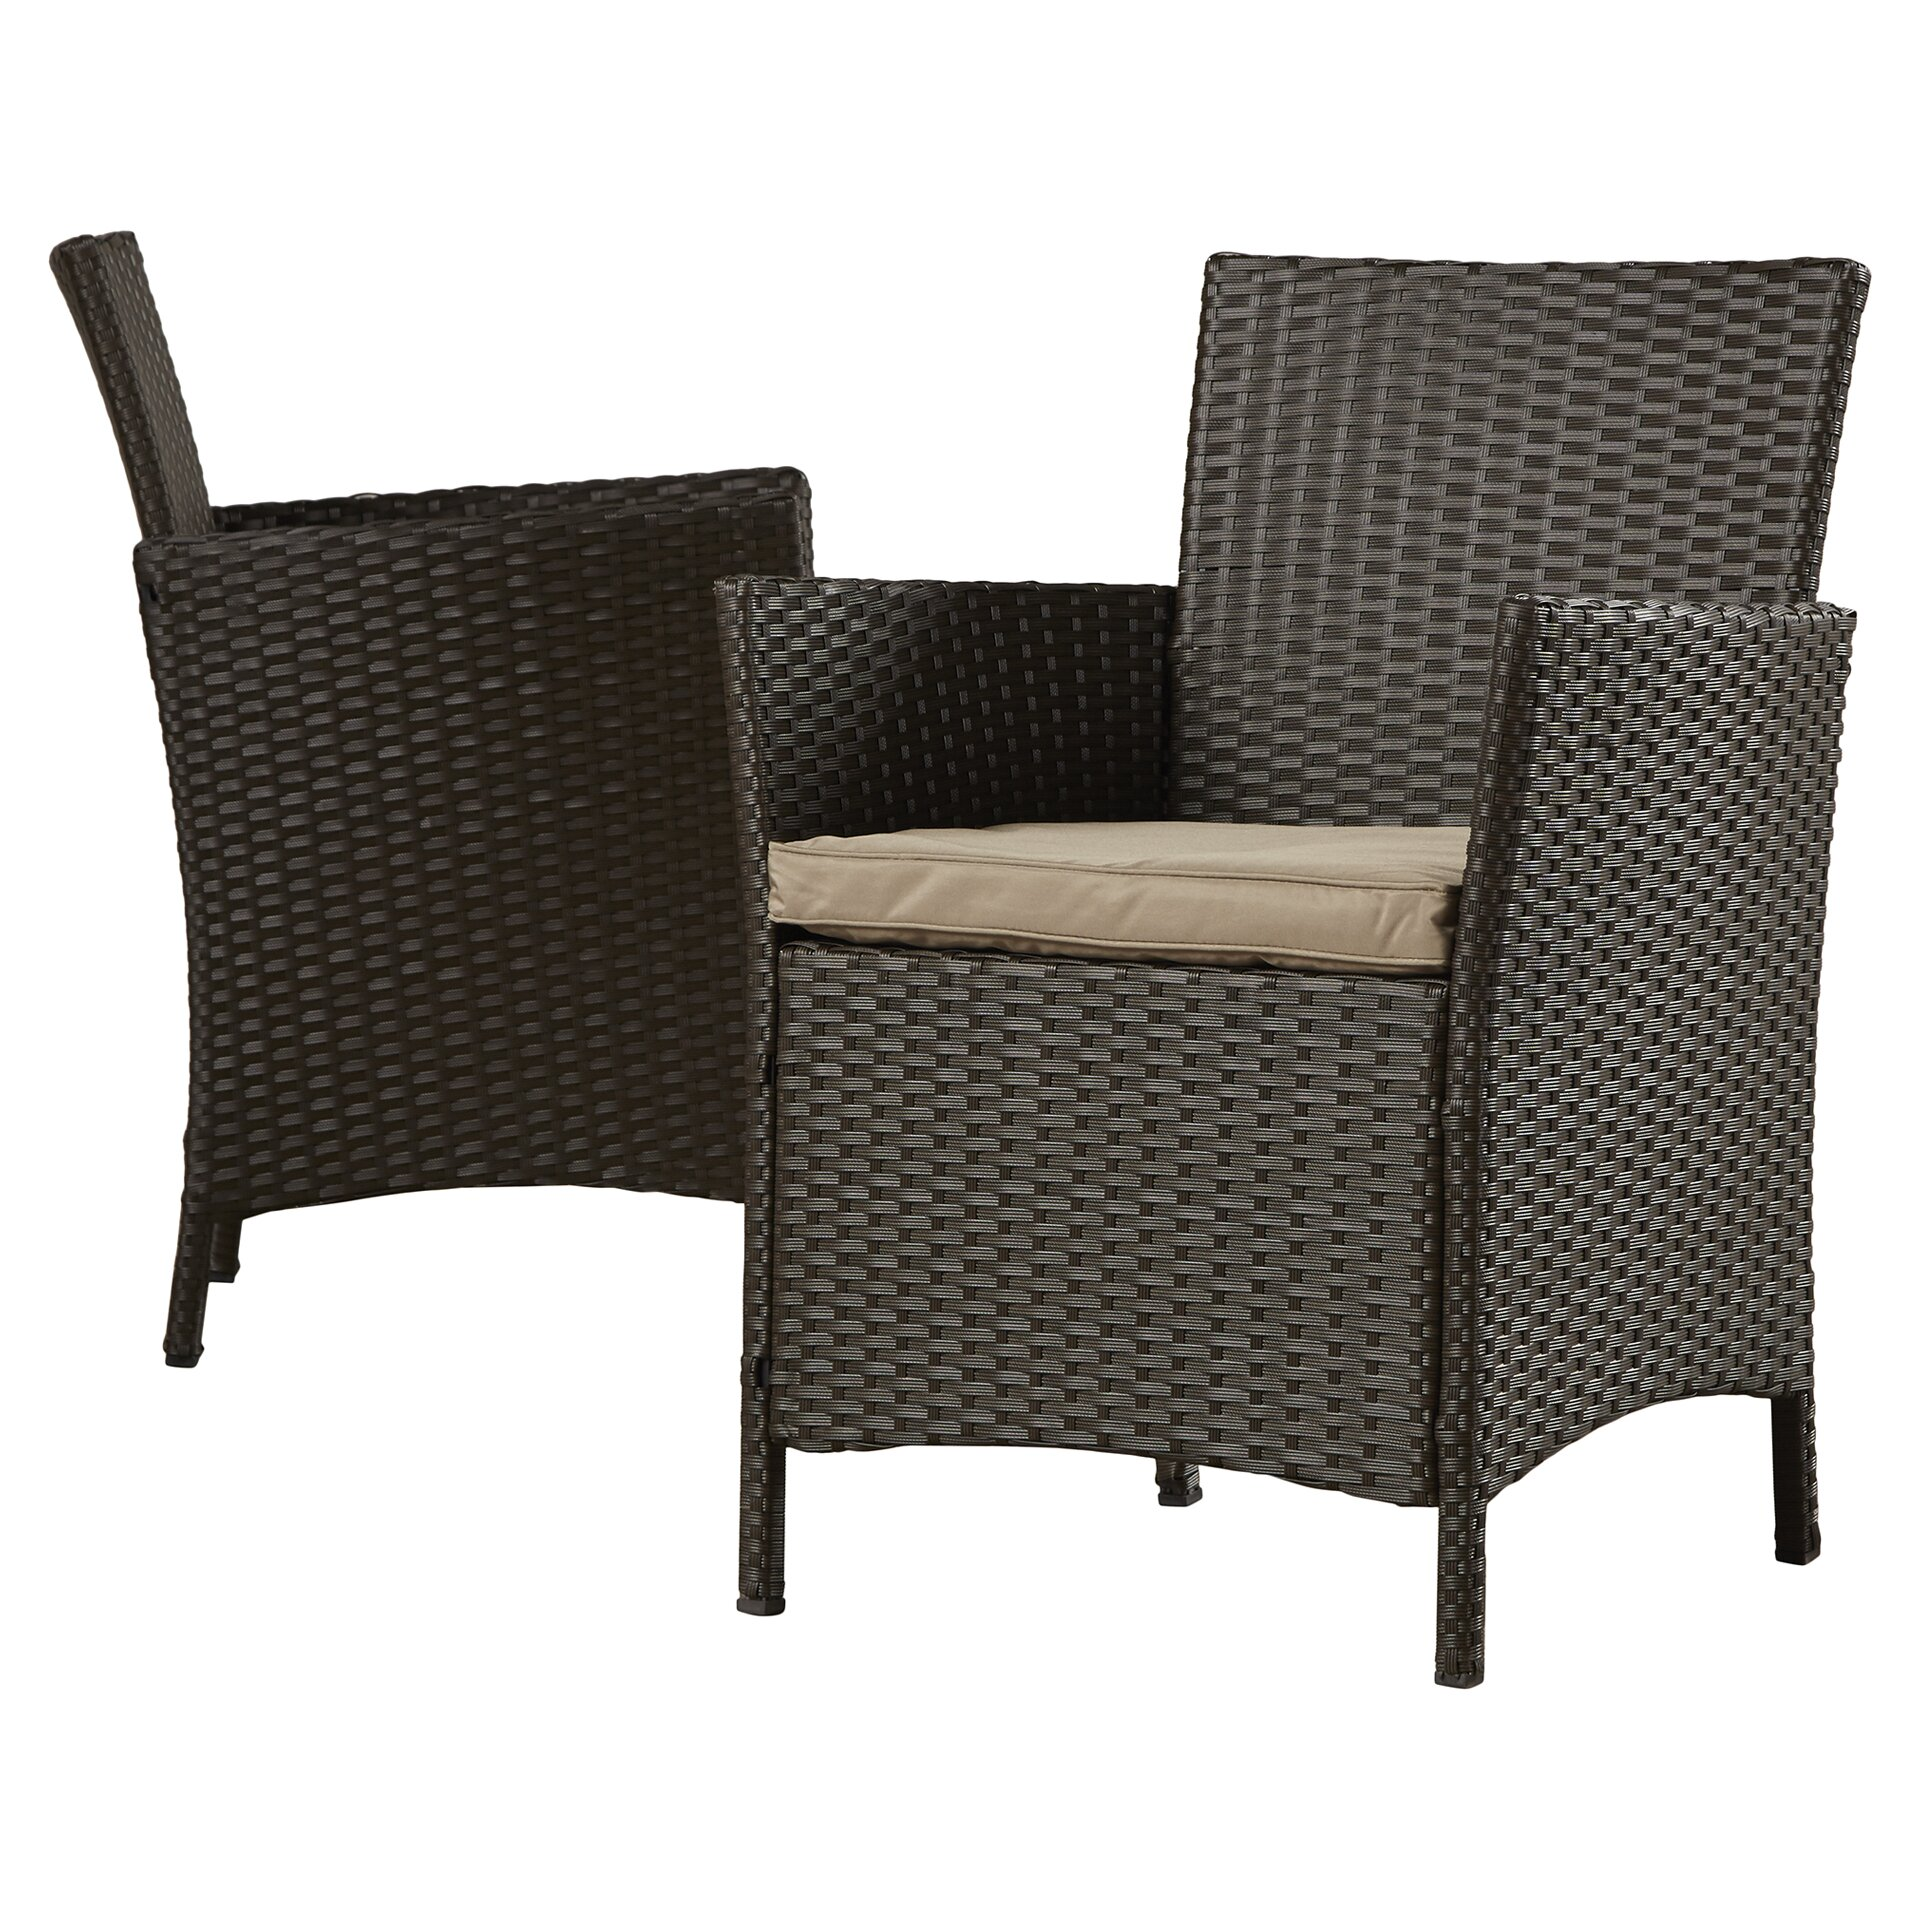 Zipcode Design Esmeralda Resin Wicker 4 Piece Deep Seating Group With Cushio